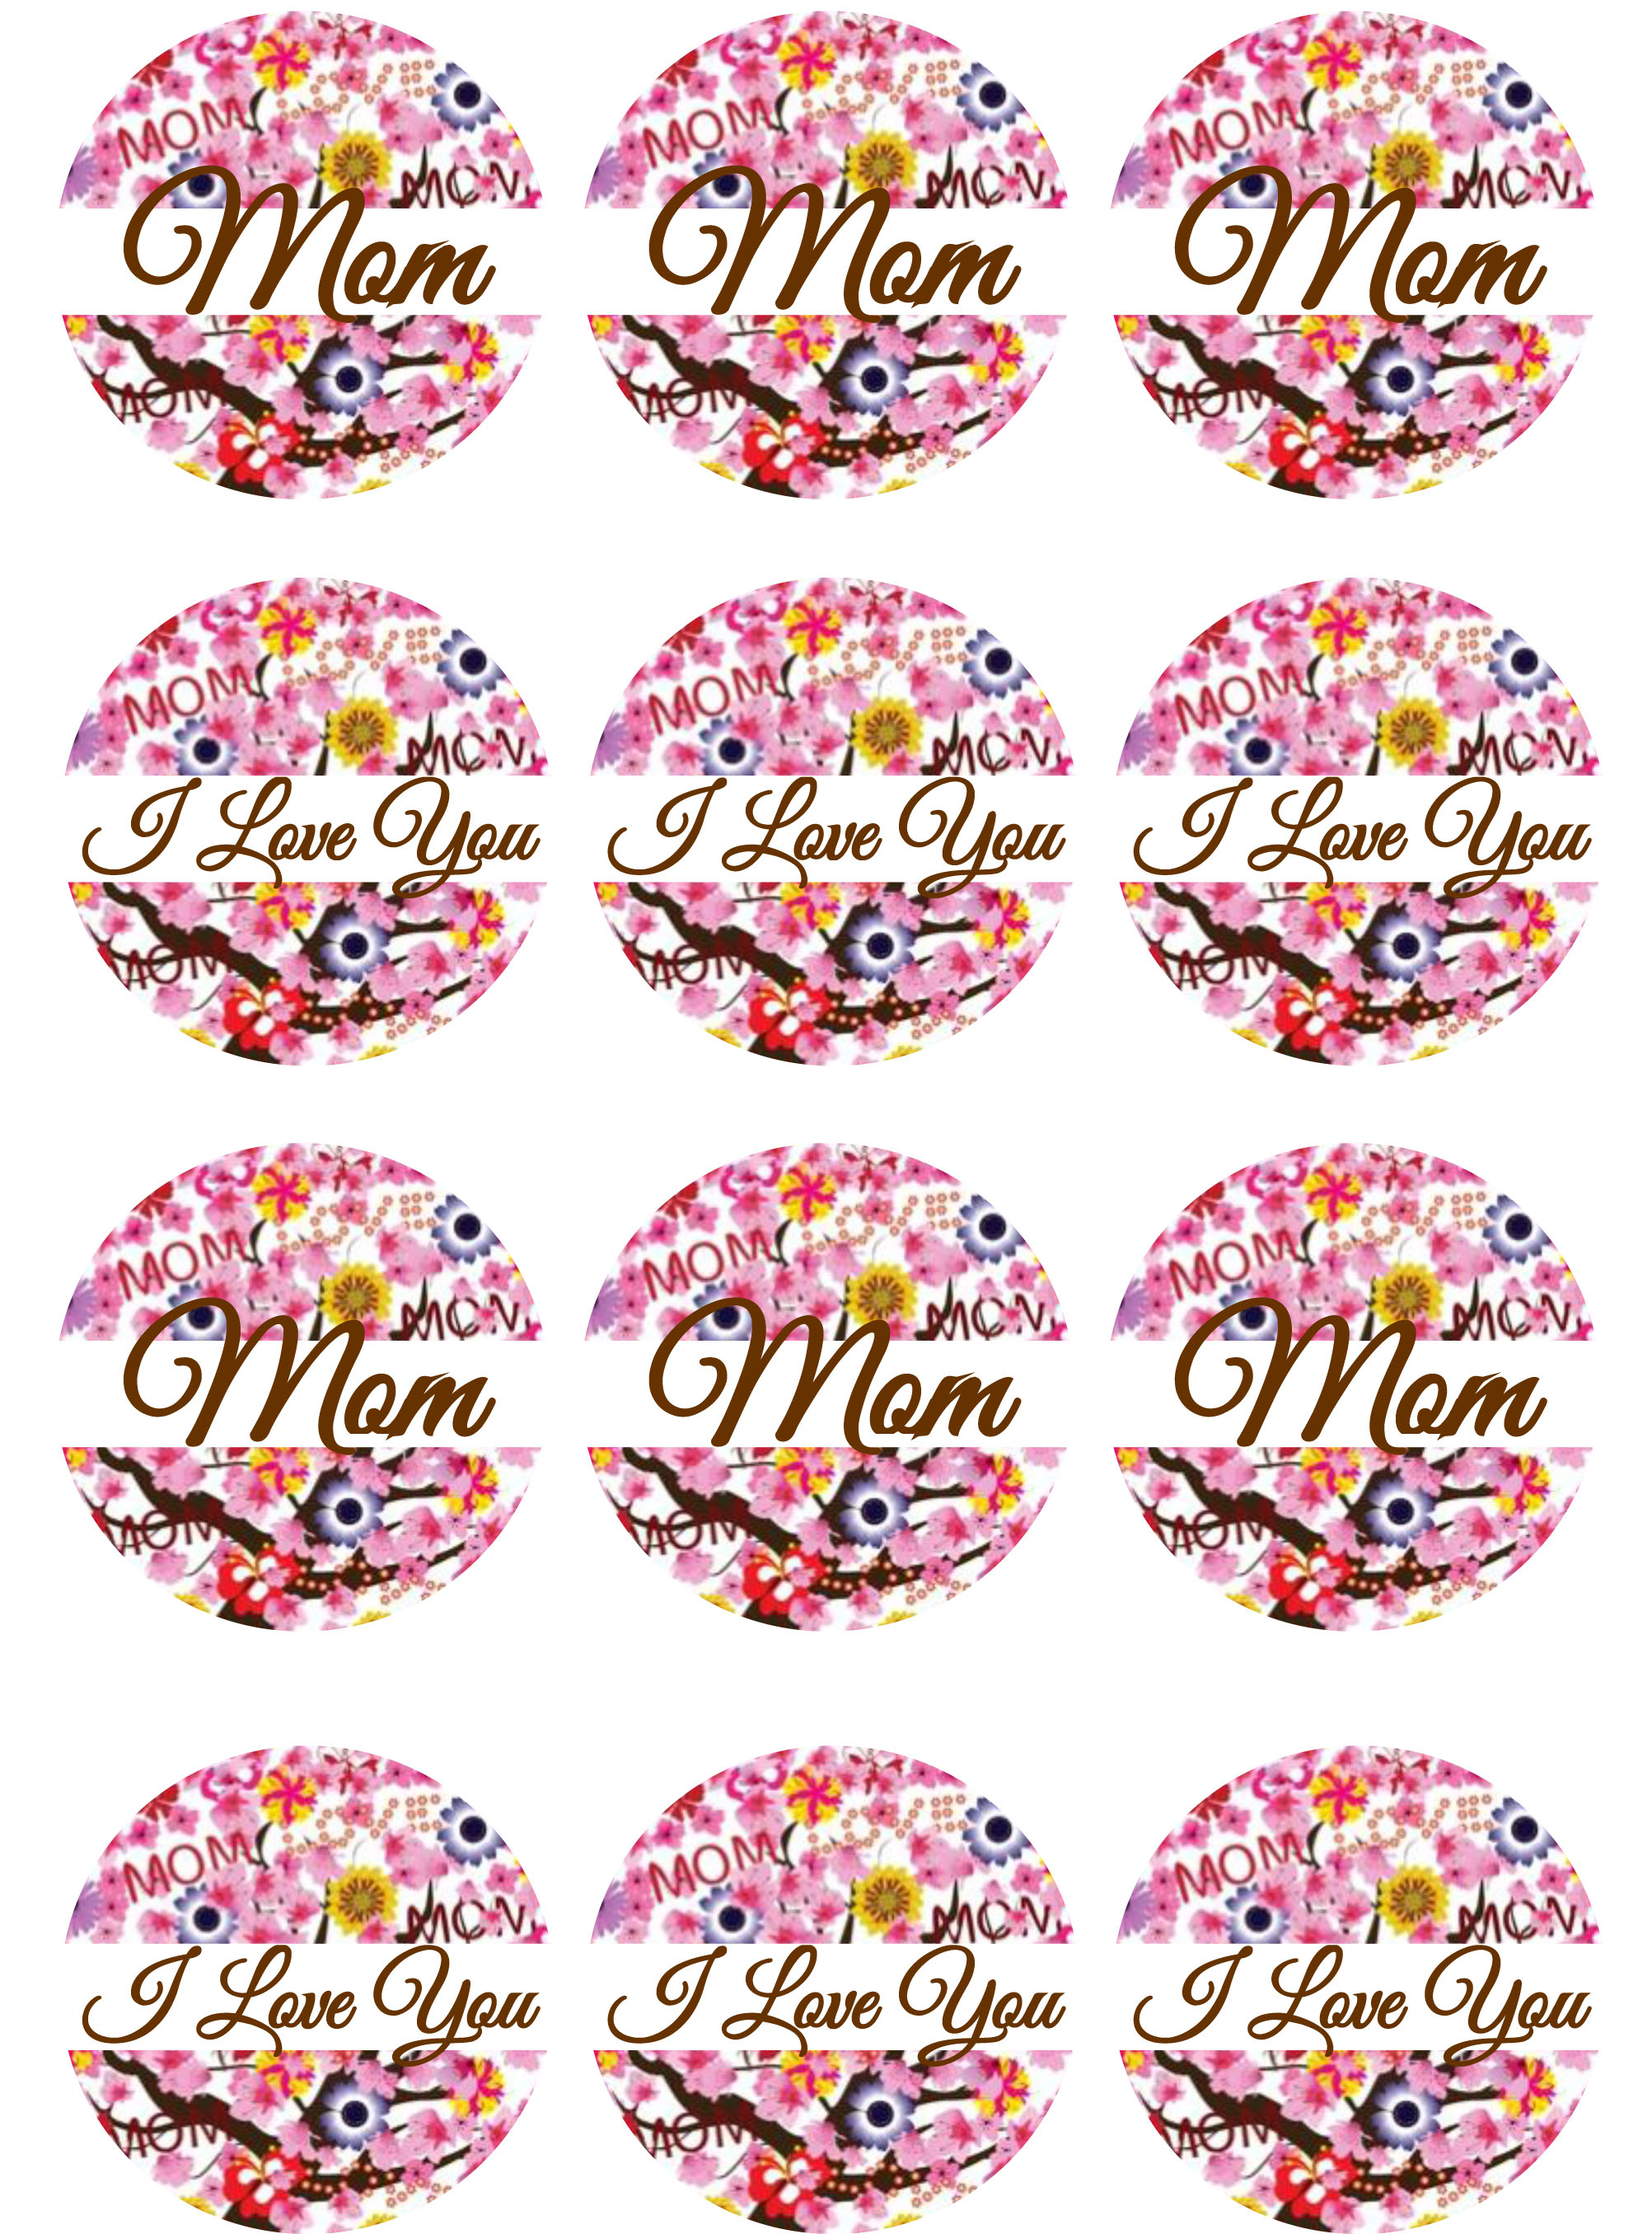 Mother's Day Floral Cupcake Toppers | Shore Cake Supply